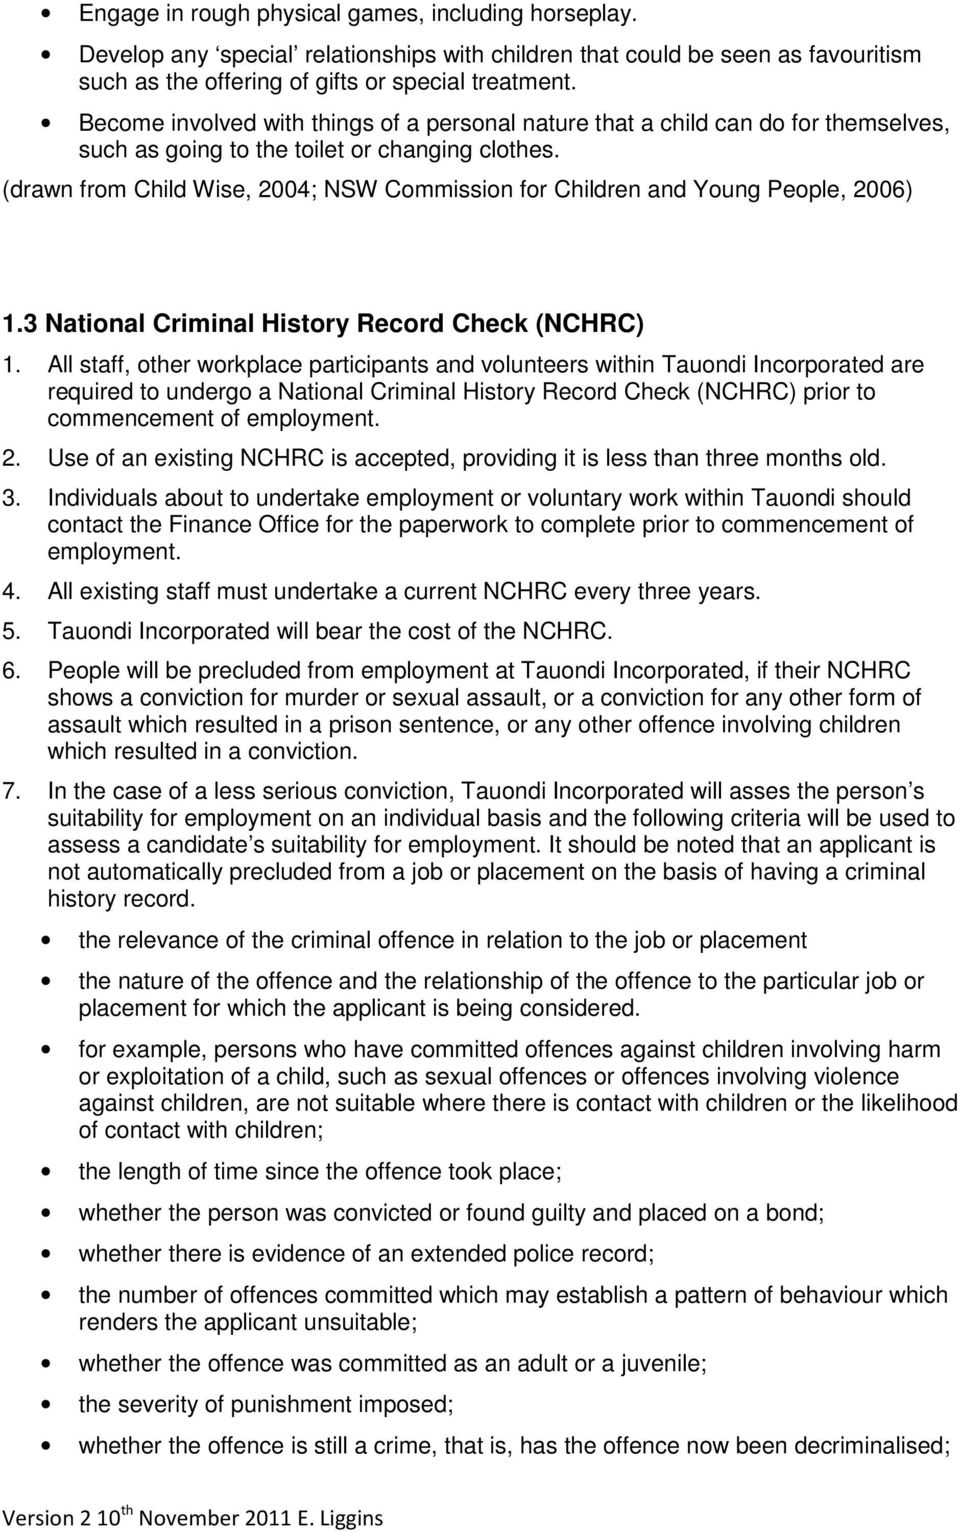 (drawn from Child Wise, 2004; NSW Commission for Children and Young People, 2006) 1.3 National Criminal History Record Check (NCHRC) 1.